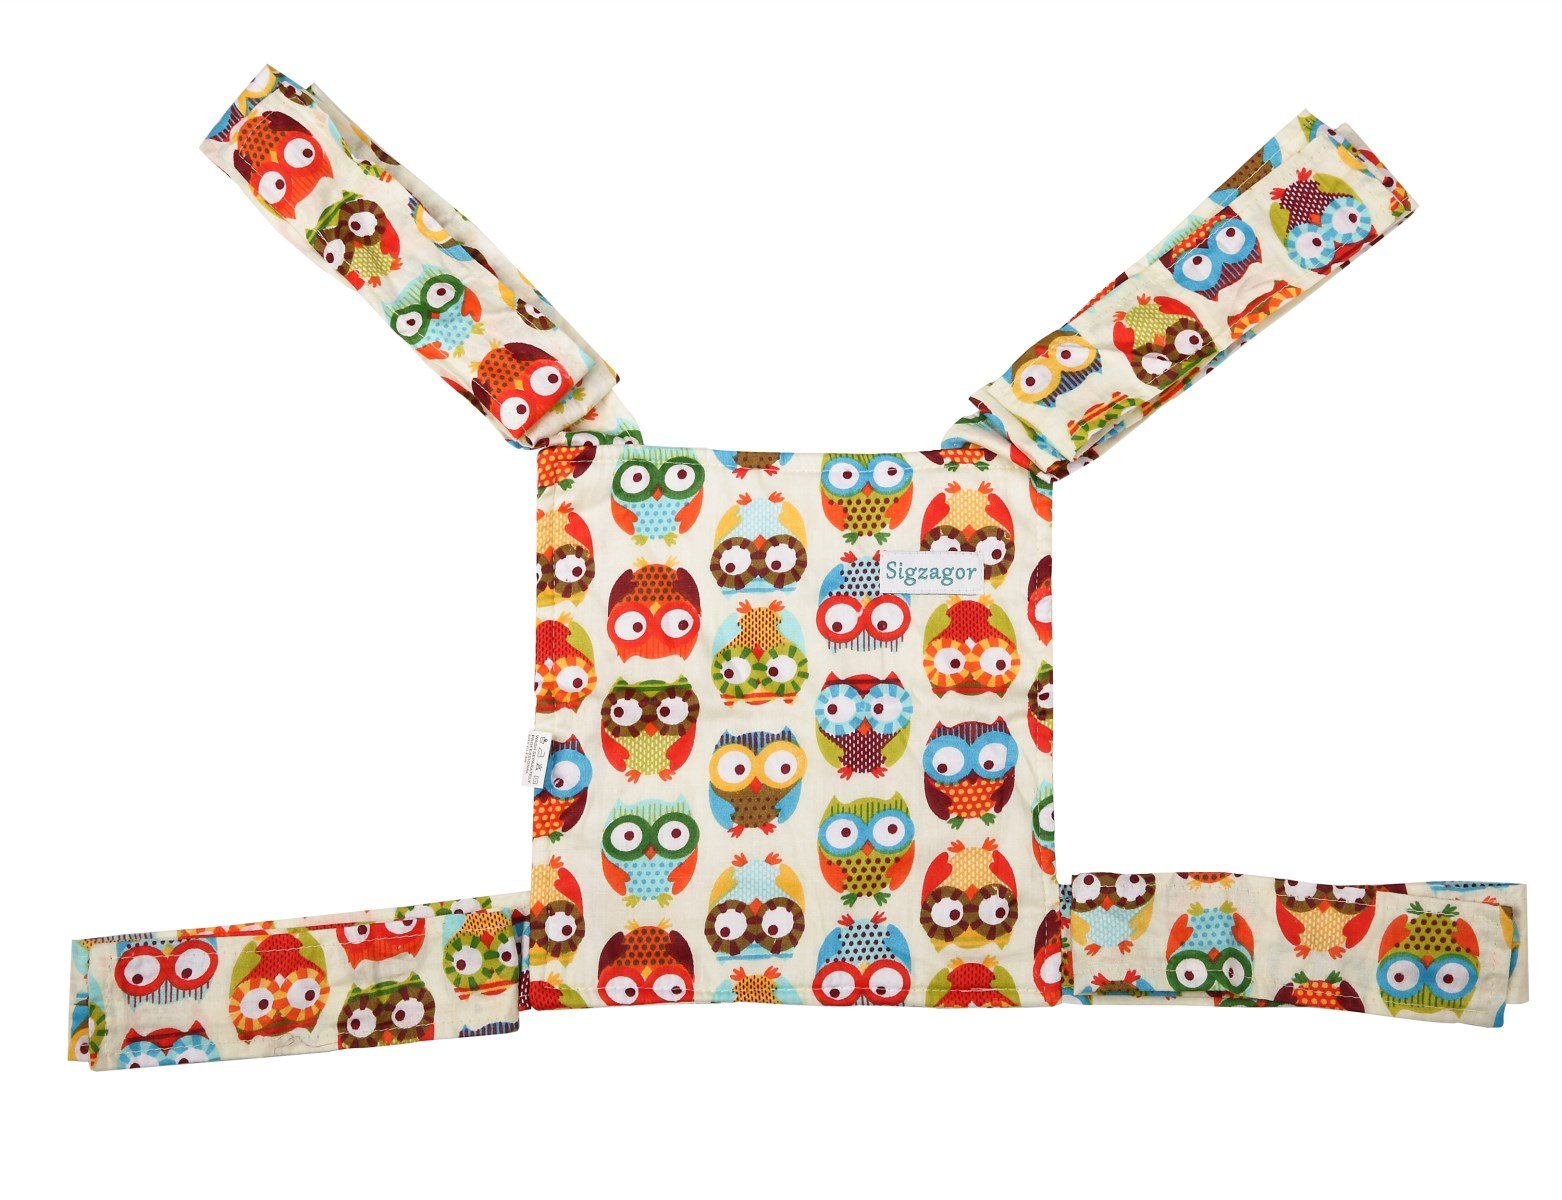 Sigzagor Baby Doll Carrier Mei Tai Sling Toy For Kids Children Toddler Front Back,Mini Carrier,Owl,Dot,Flower,Kaleidoscope (Owl) by Sigzagor (Image #7)